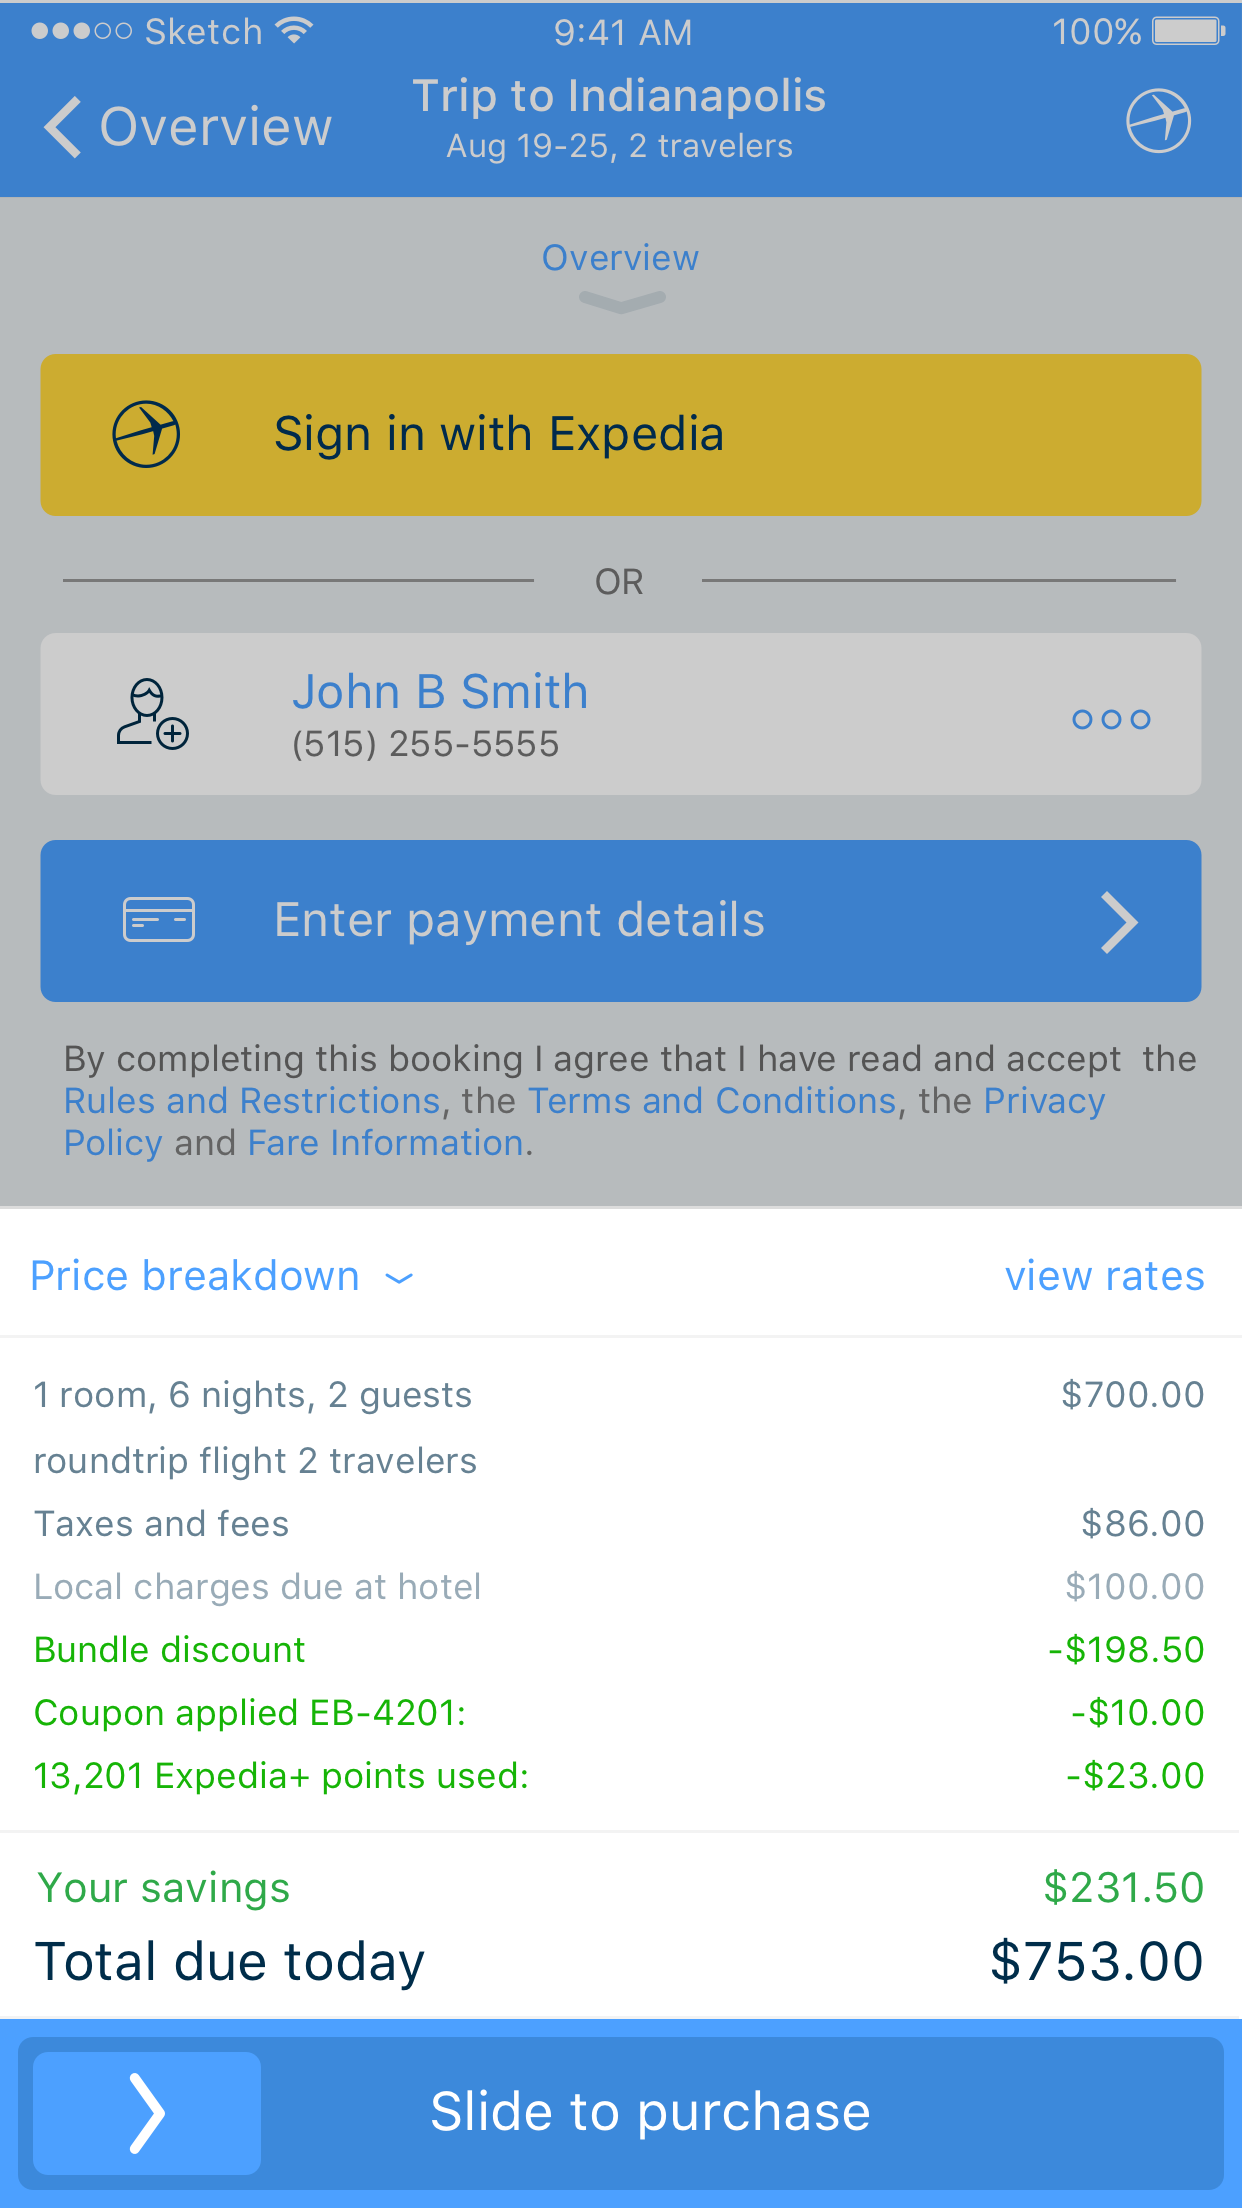 92 - Checkout Payment Details Highlighted Copy 3.png